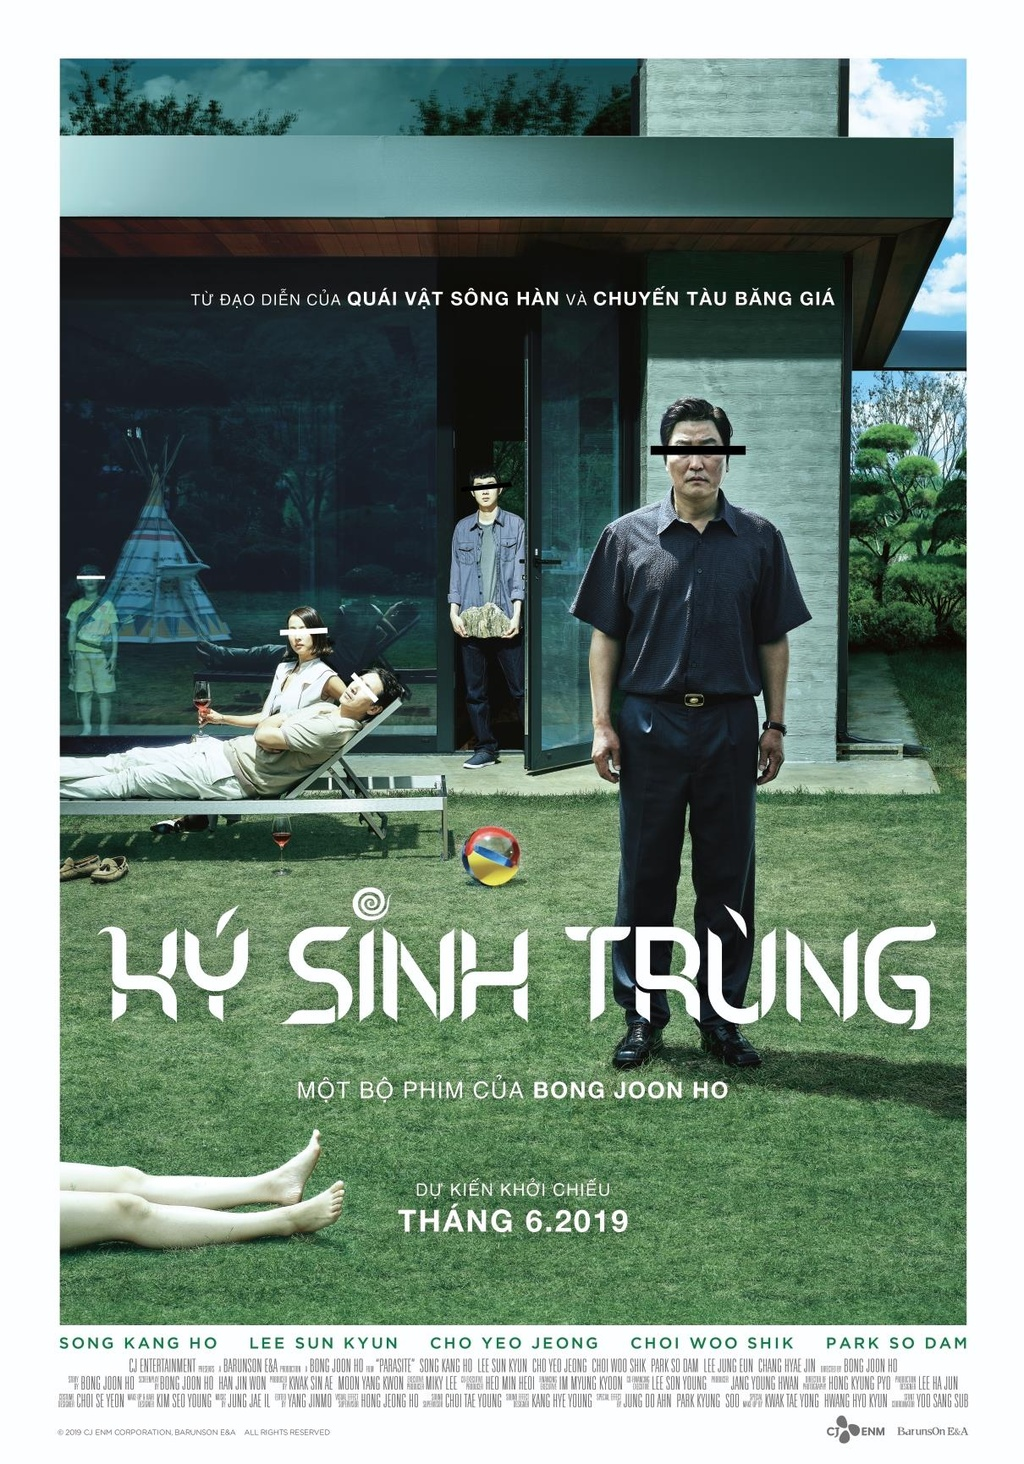 review phim Ky sinh trung anh 1